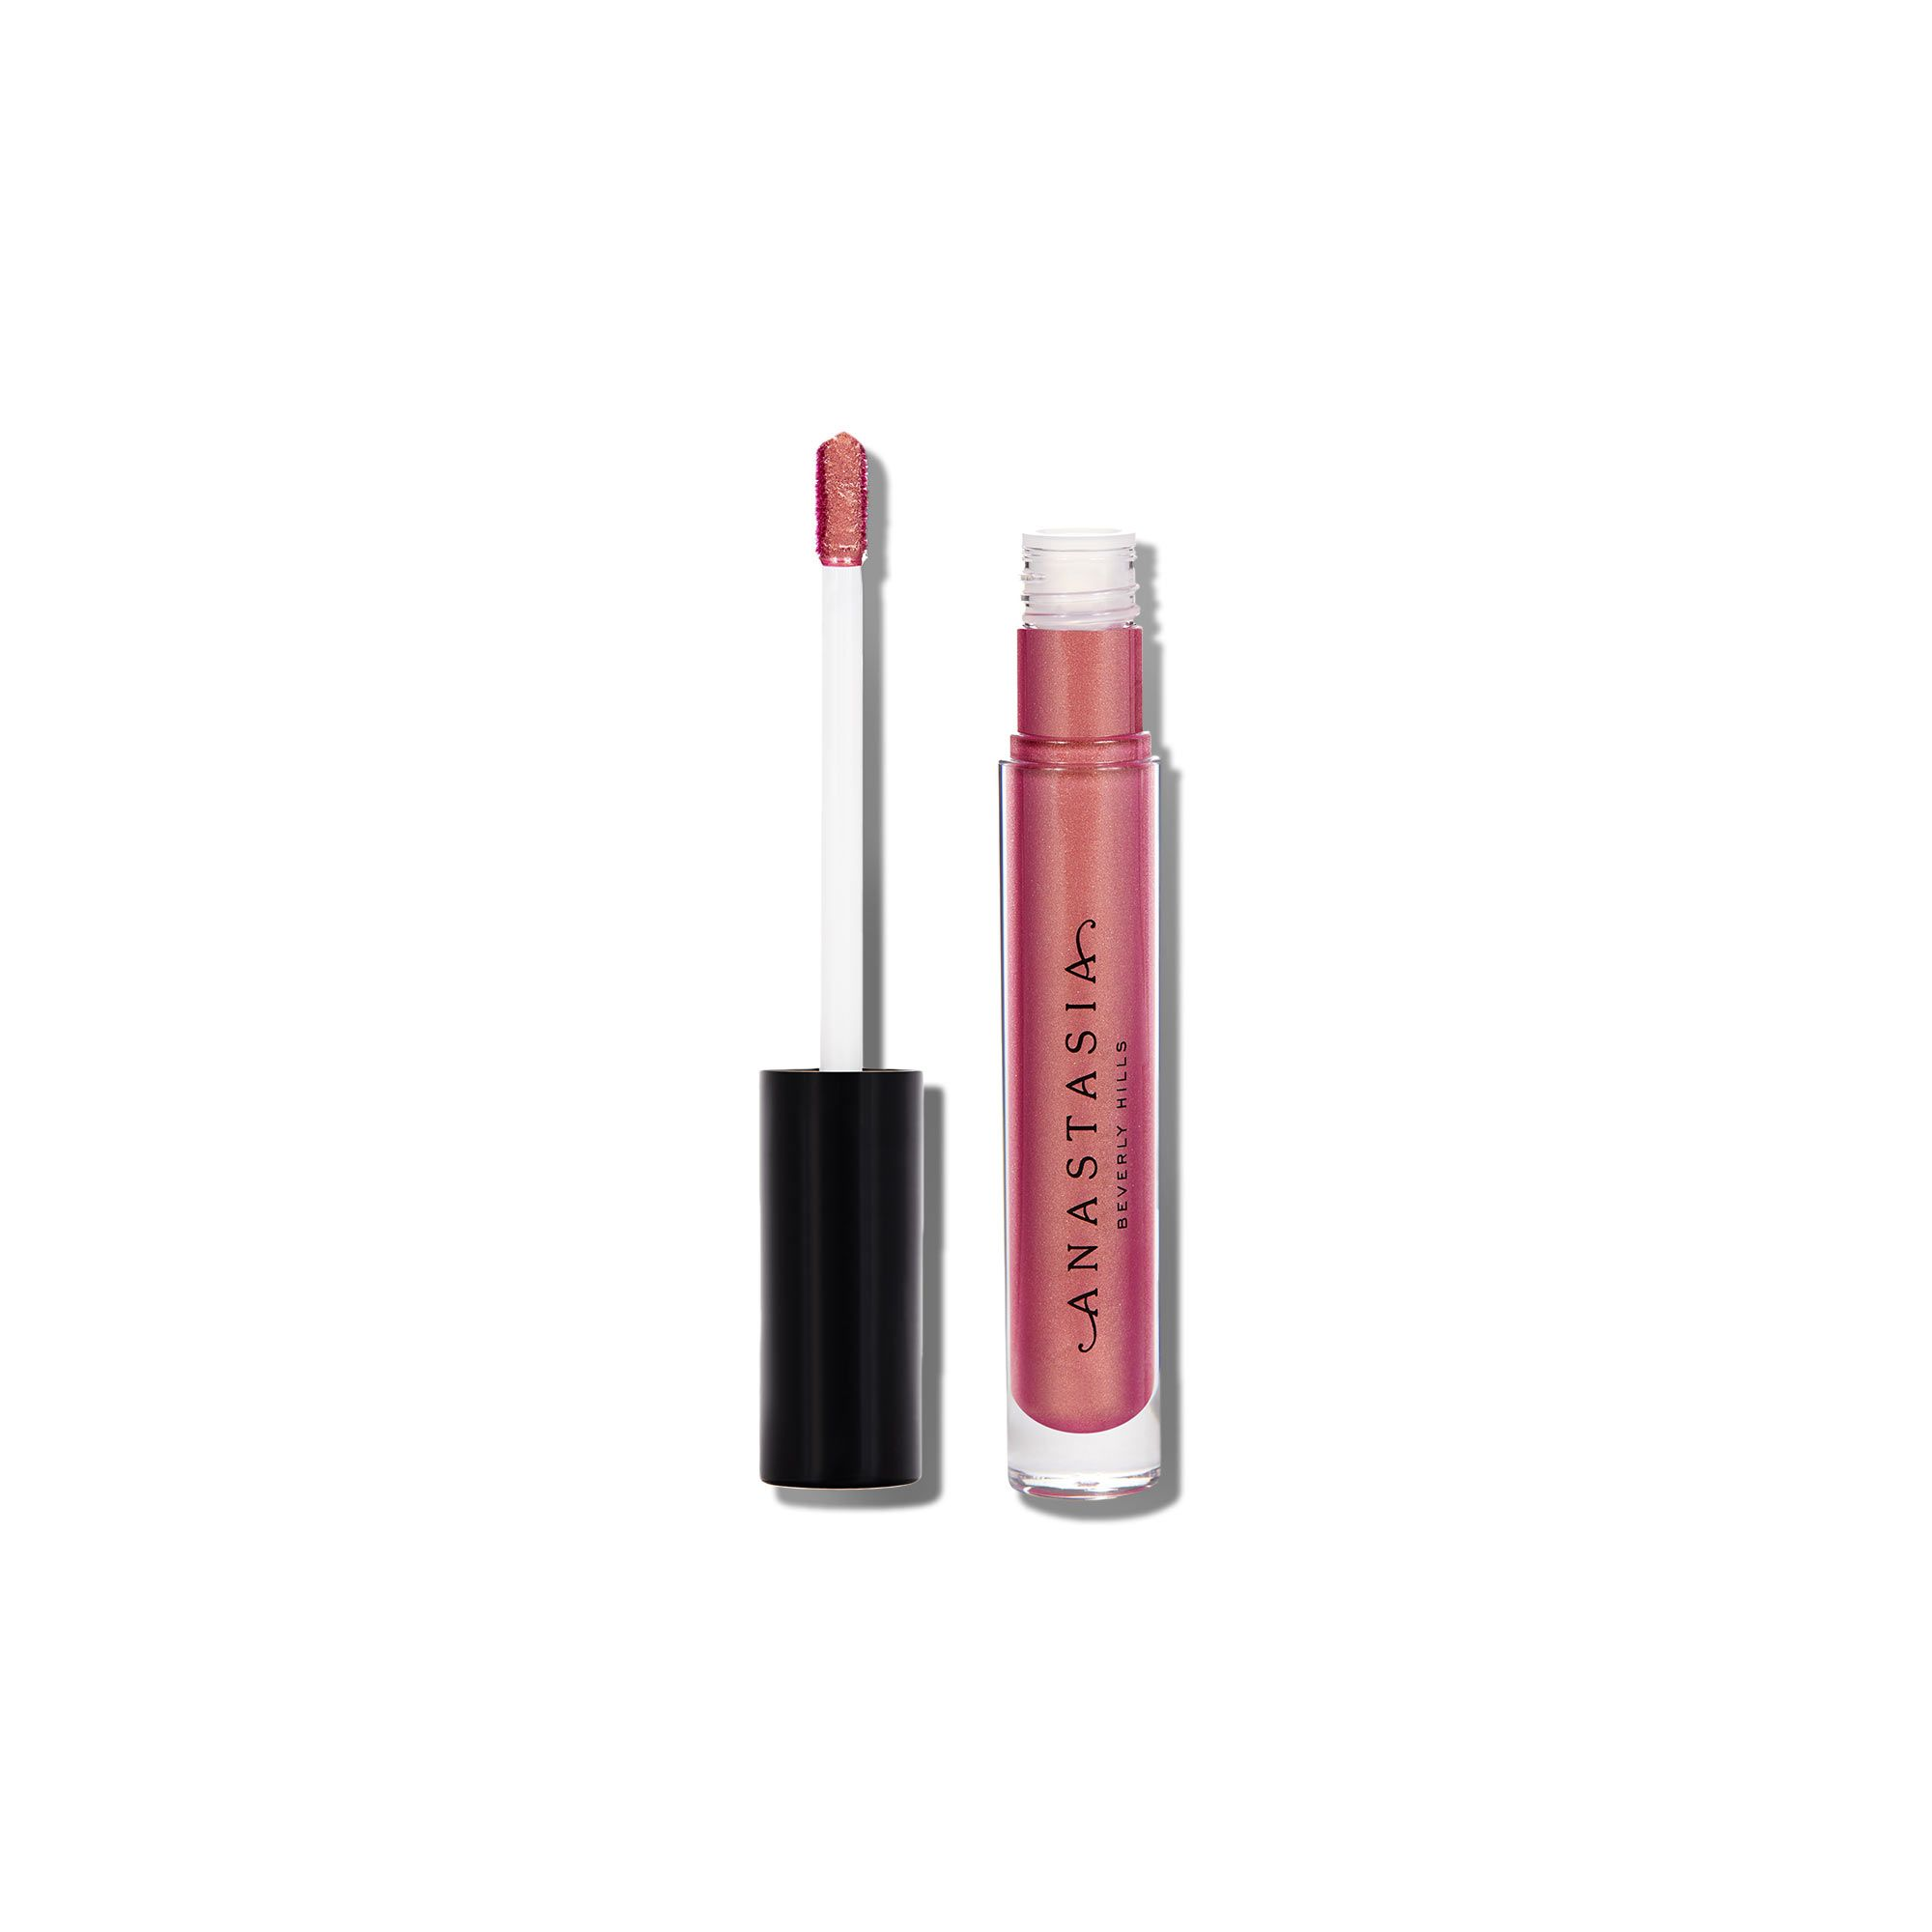 An opaque, high-shine lip color. This vanilla-scented, non-drying ($16) liked on Polyvore